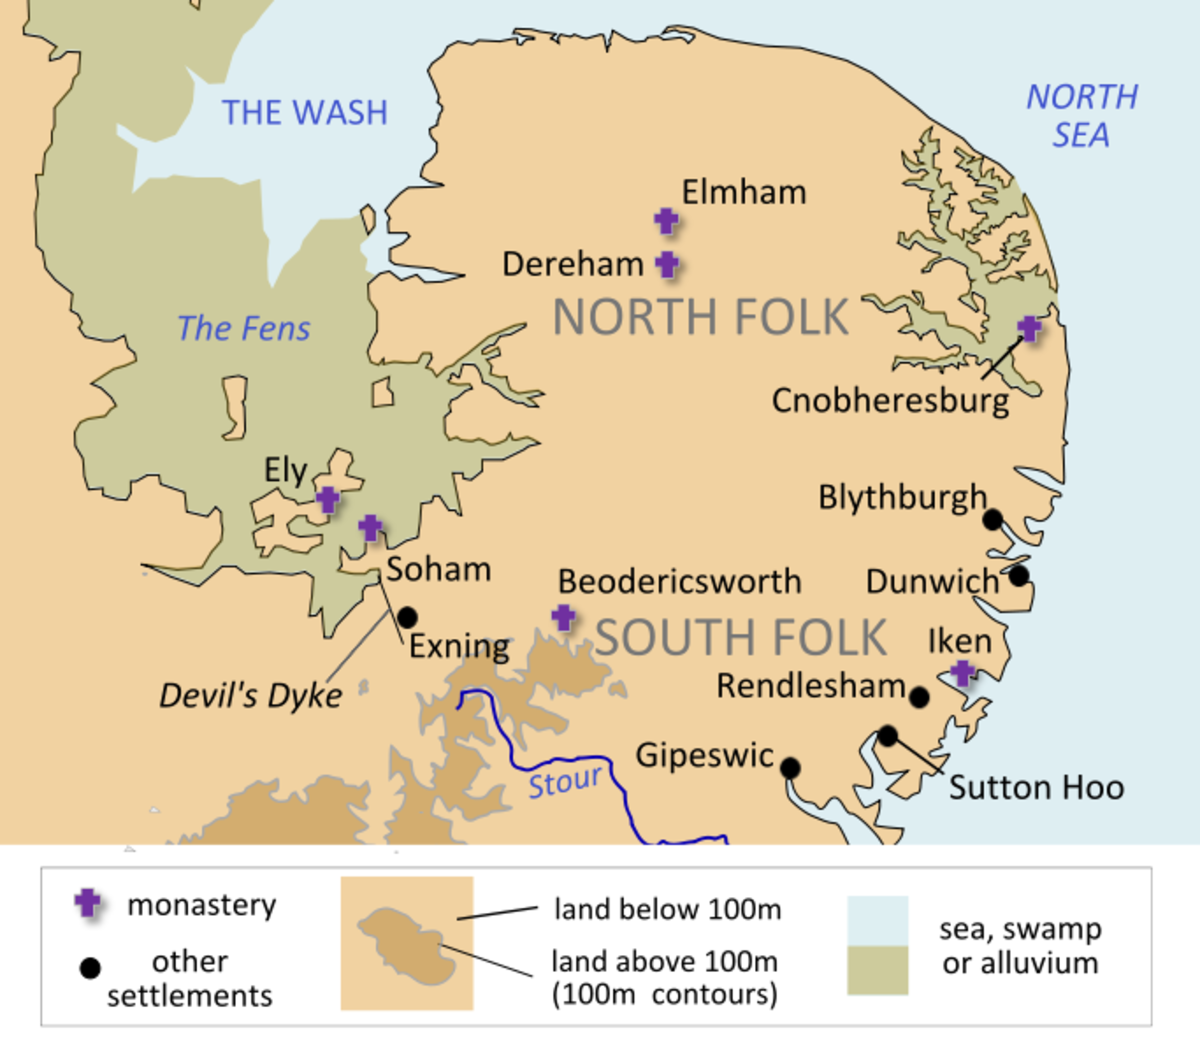 'Raedwald's realm, Northfolc and Suthfolc (Norfolk, Suffolk). Together they were known as the kingdom of the East Aengle, East Anglia